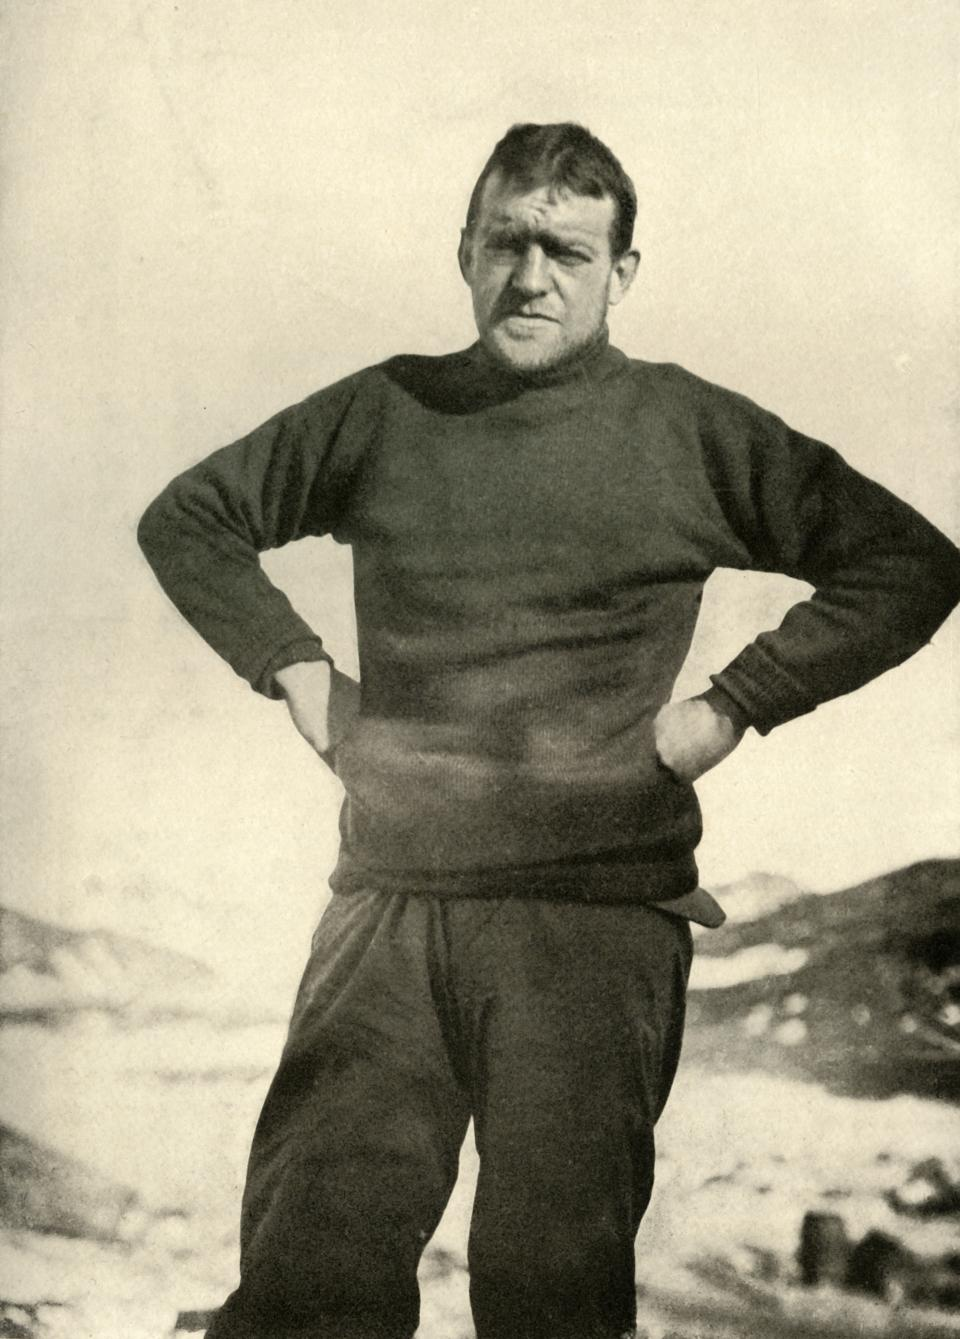 The Leader of the Expedition in Winter Garb', circa 1908, (1909). Anglo-Irish explorer Ernest Shackleton (1874-1922) in a jumper. Shackleton made three expeditions to the Antarctic. During the second expedition, 1907-1909, he and three companions established a new record, Farthest South latitude at 88°S, only 97 geographical miles (112 statute miles, or 180 km) from the South Pole, the largest advance to the pole in exploration history. Members of his team also climbed Mount Erebus, the most active volcano in the Antarctic. Shackleton was knighted by King Edward VII for these achievements. He died during his third and last 'oceanographic and sub-antarctic' expedition, aged 47. Illustration from The Heart of the Antarctic, Vol. I, by E. H. Shackleton, C.V.O. [William Heinemann, London, 1909]. Artist Unknown. (Photo by Print Collector/Getty Images)